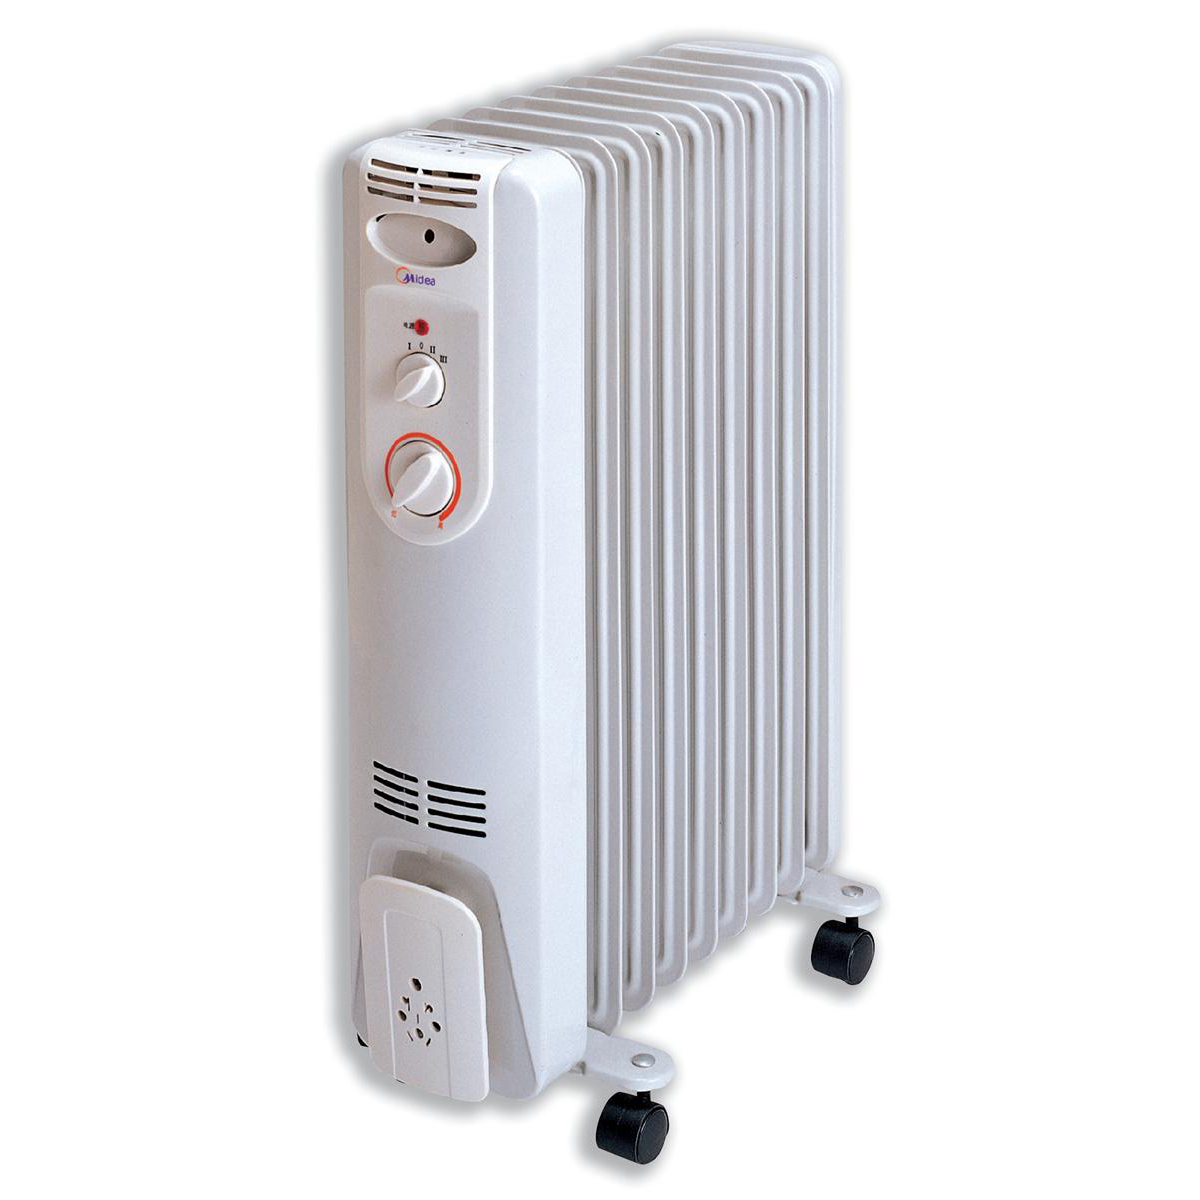 Image for Igenix 2kW Oil Filled Radiator White Ref IG2600